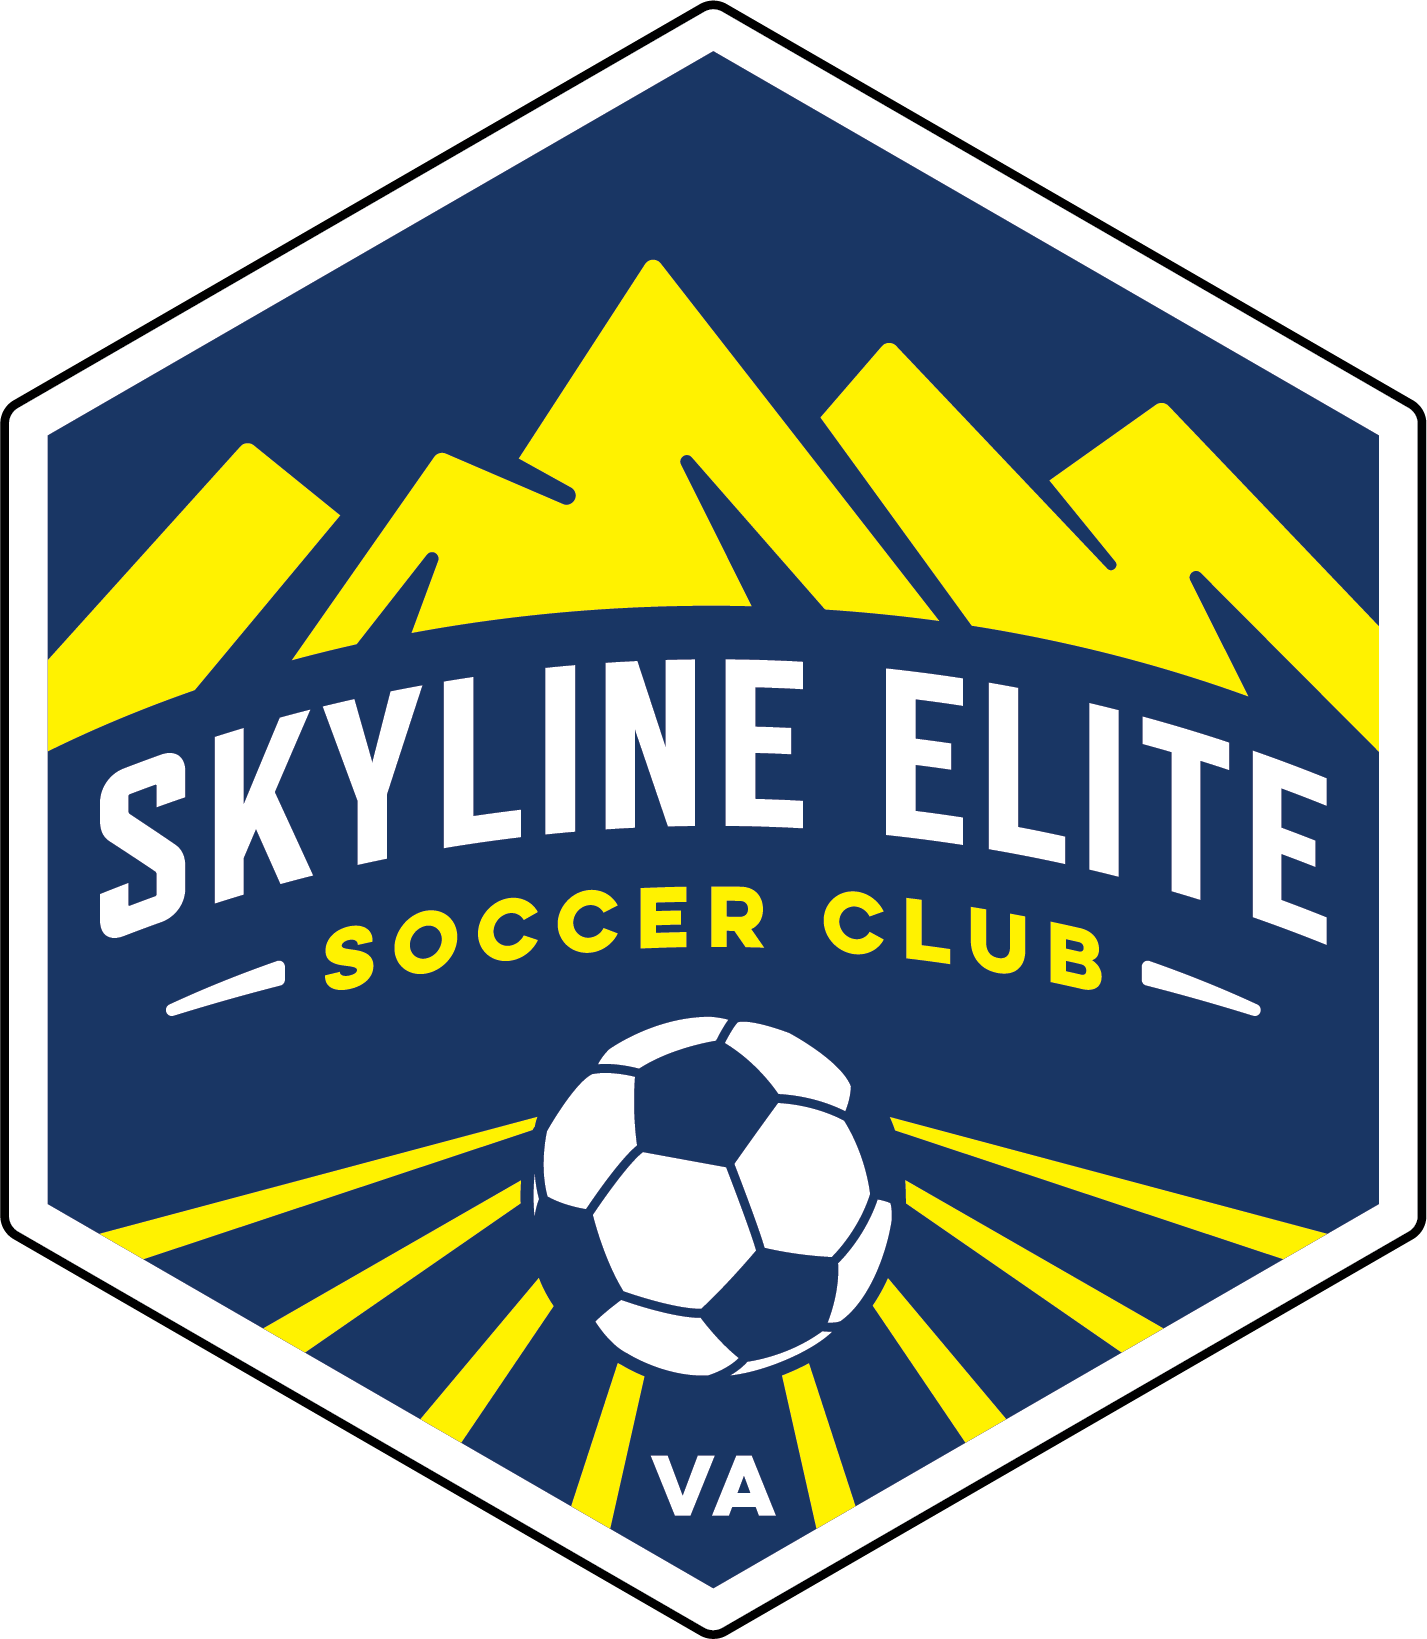 Skyline Elite Logo